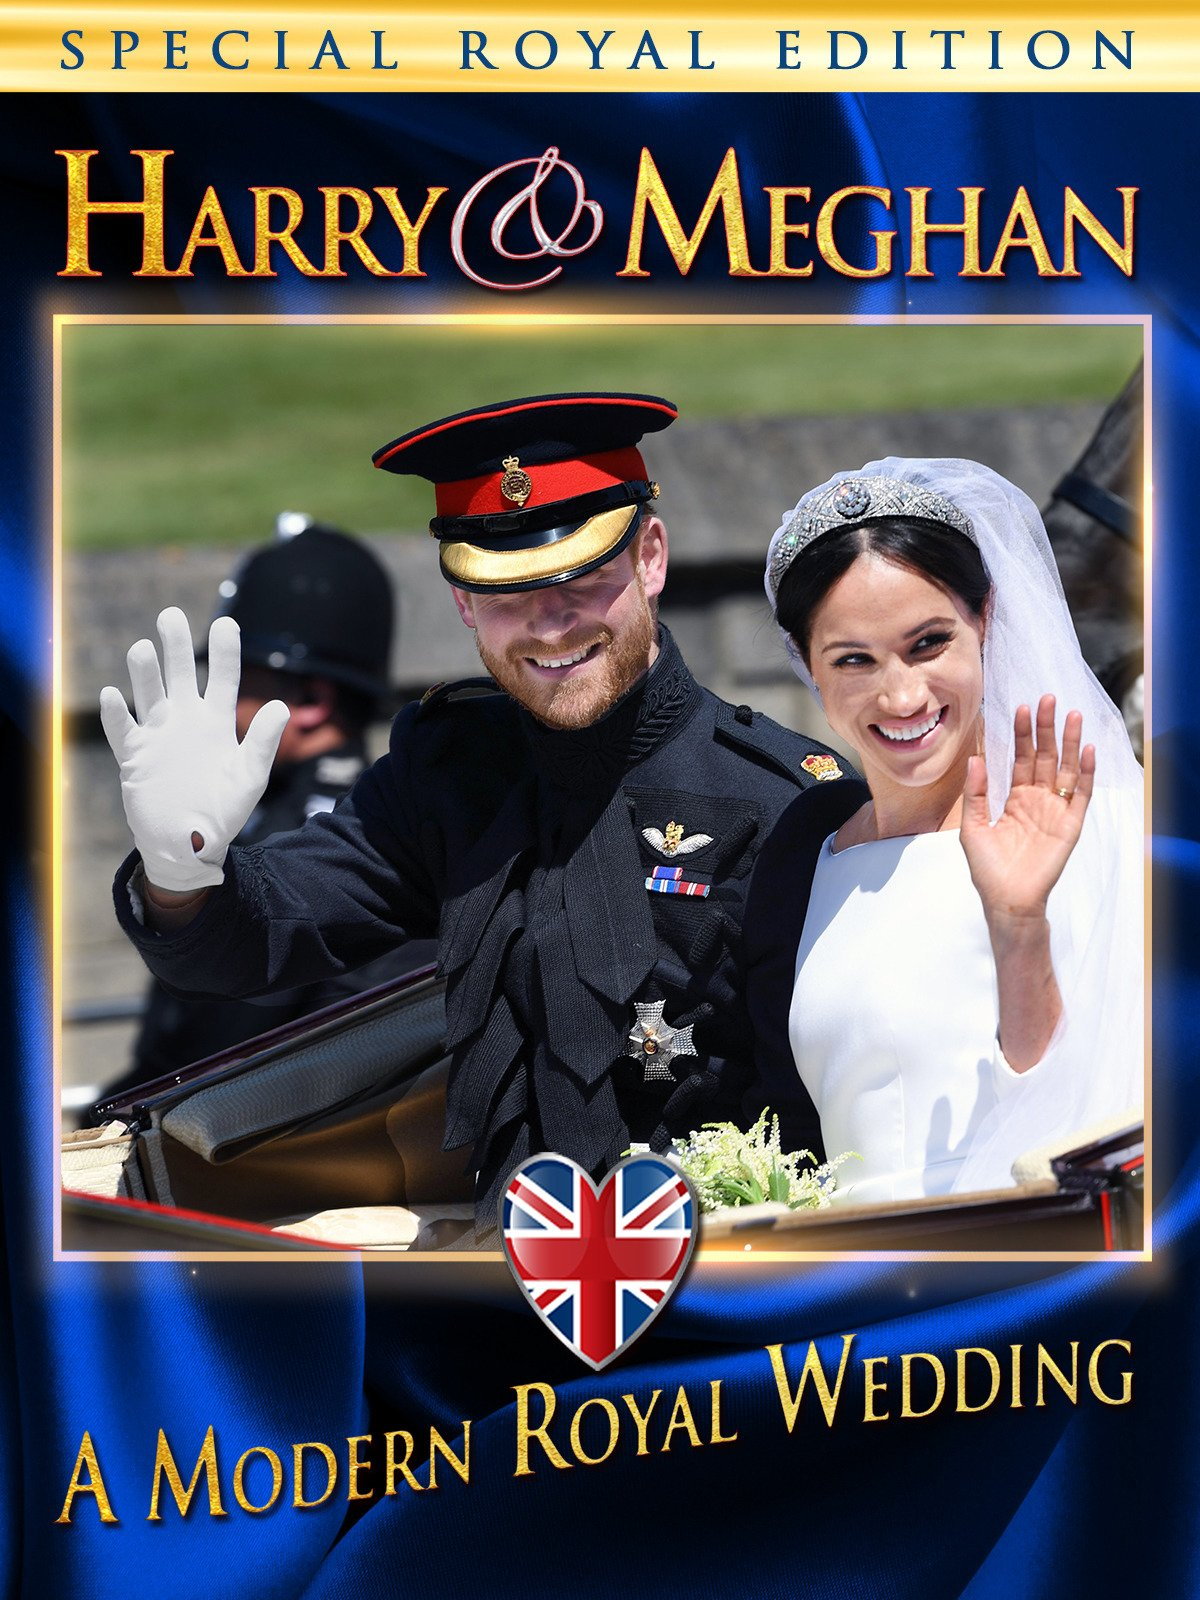 Harry and Meghan: A Modern Royal Wedding